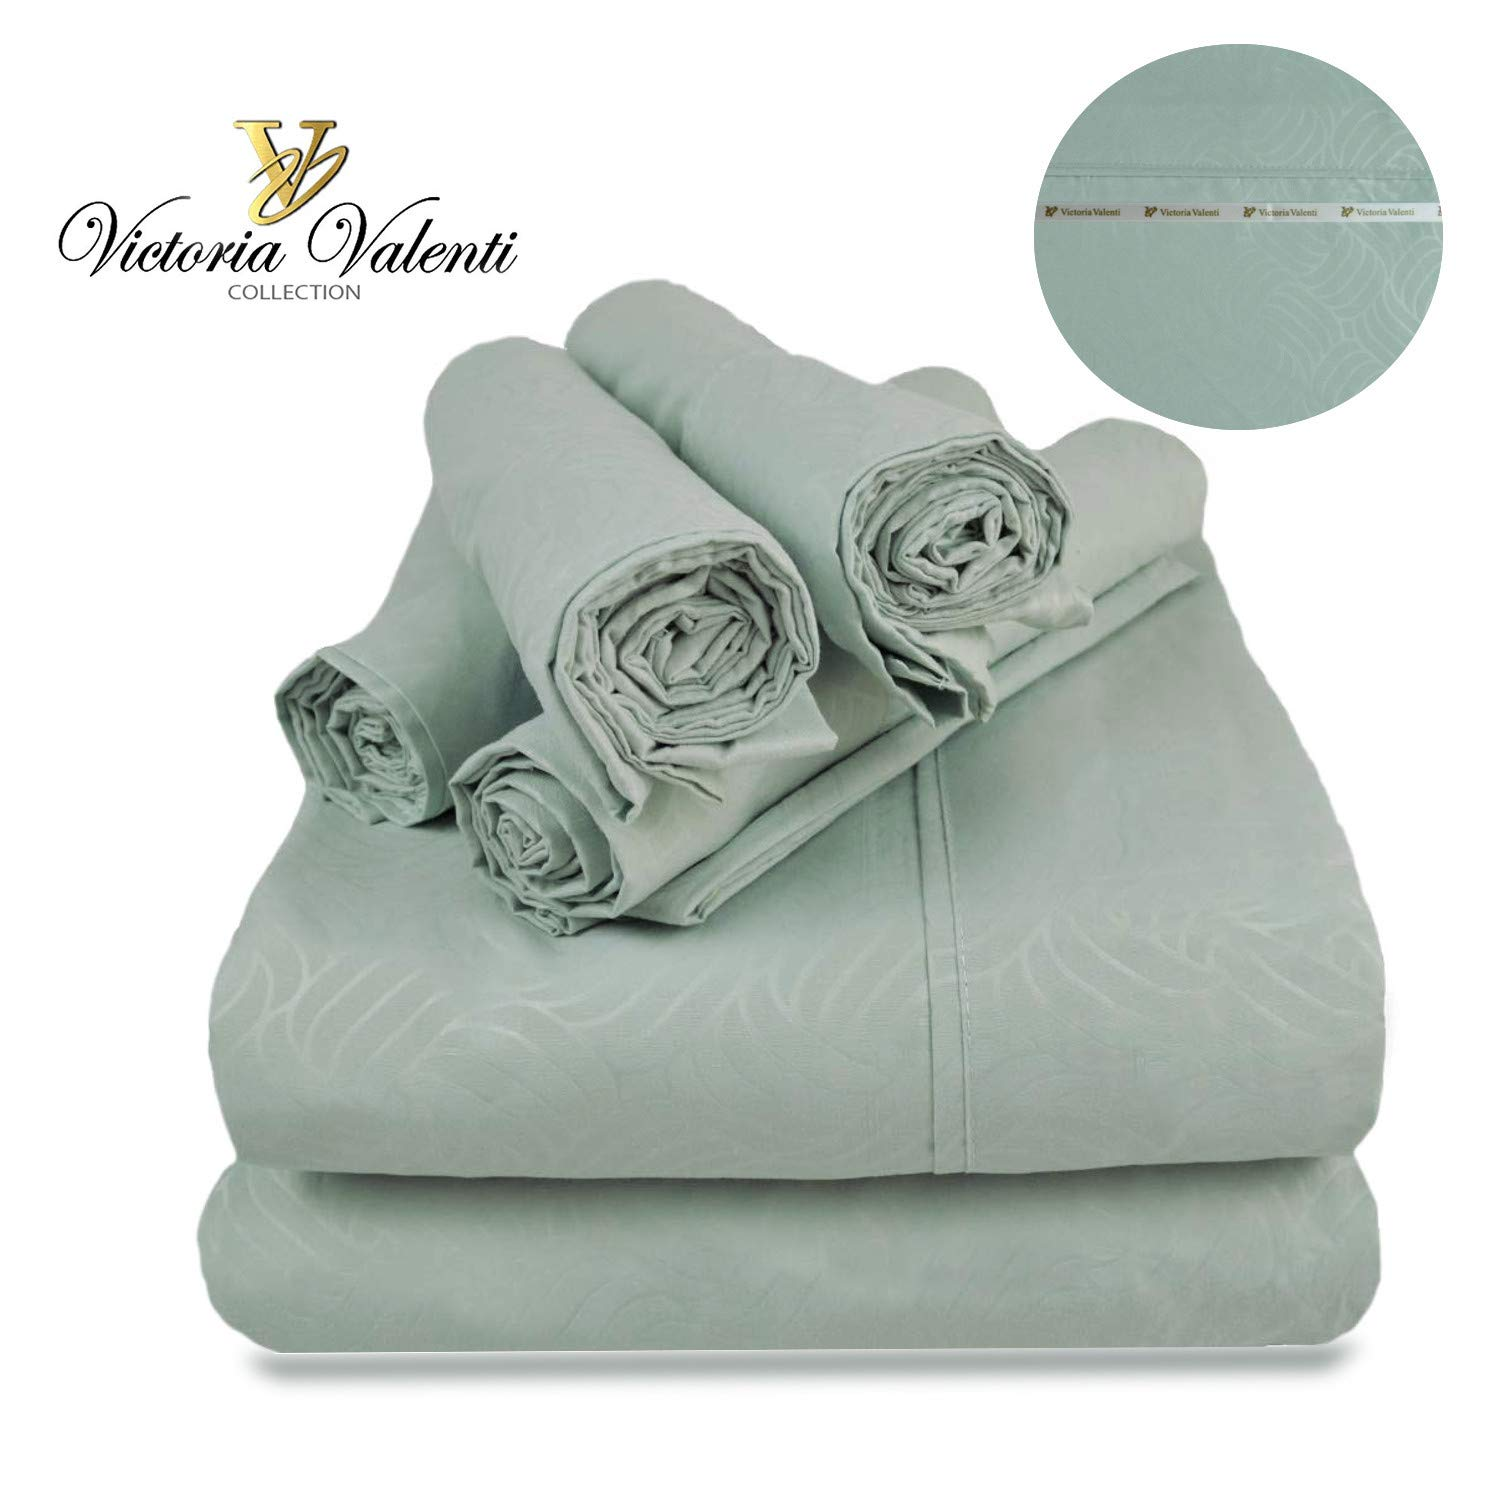 Victoria Valenti Embossed Sheet Set 7 Pieces with 4 Pillow Cases, Double Brushed and Ultra Soft with Deep Pockets for Extra Deep Mattress, Microfiber, Hypoallergenic Split K Teal